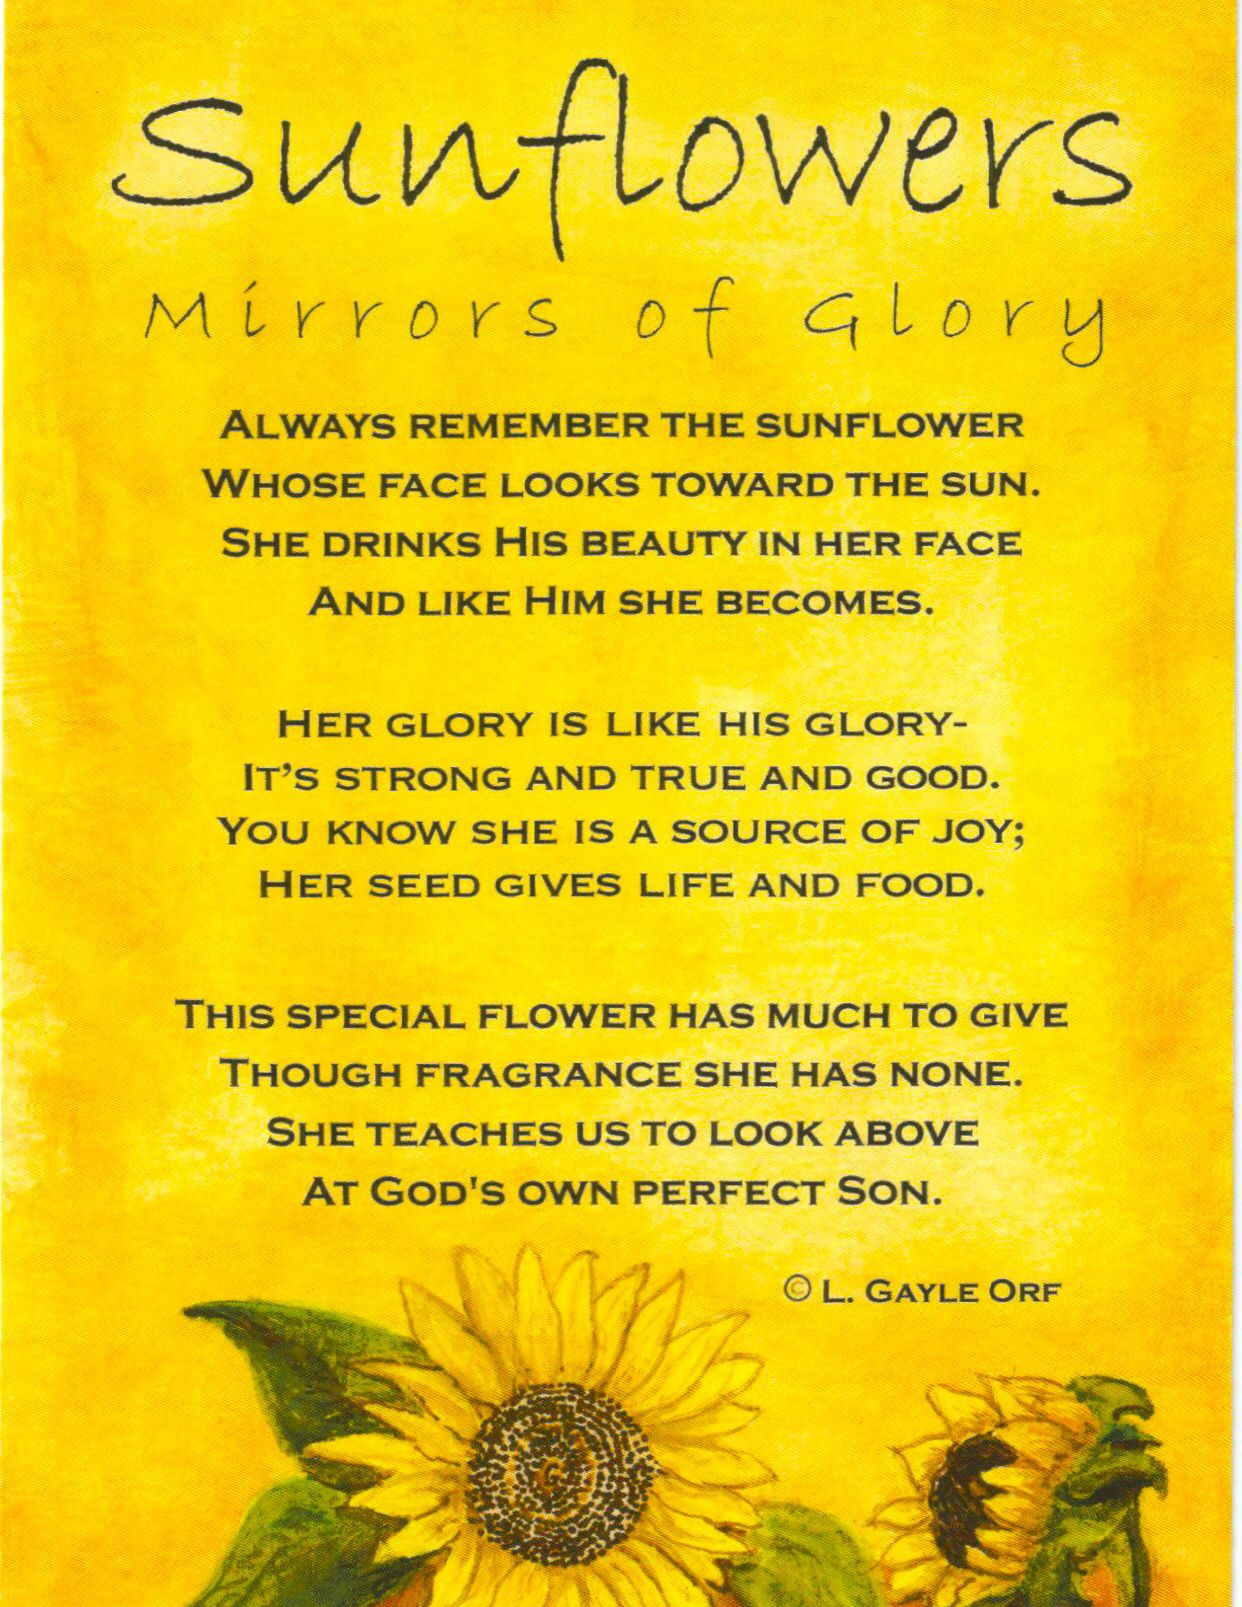 Sunflowers: Mirrors of Glory | wordstoliveby | Pinterest | Meine ...